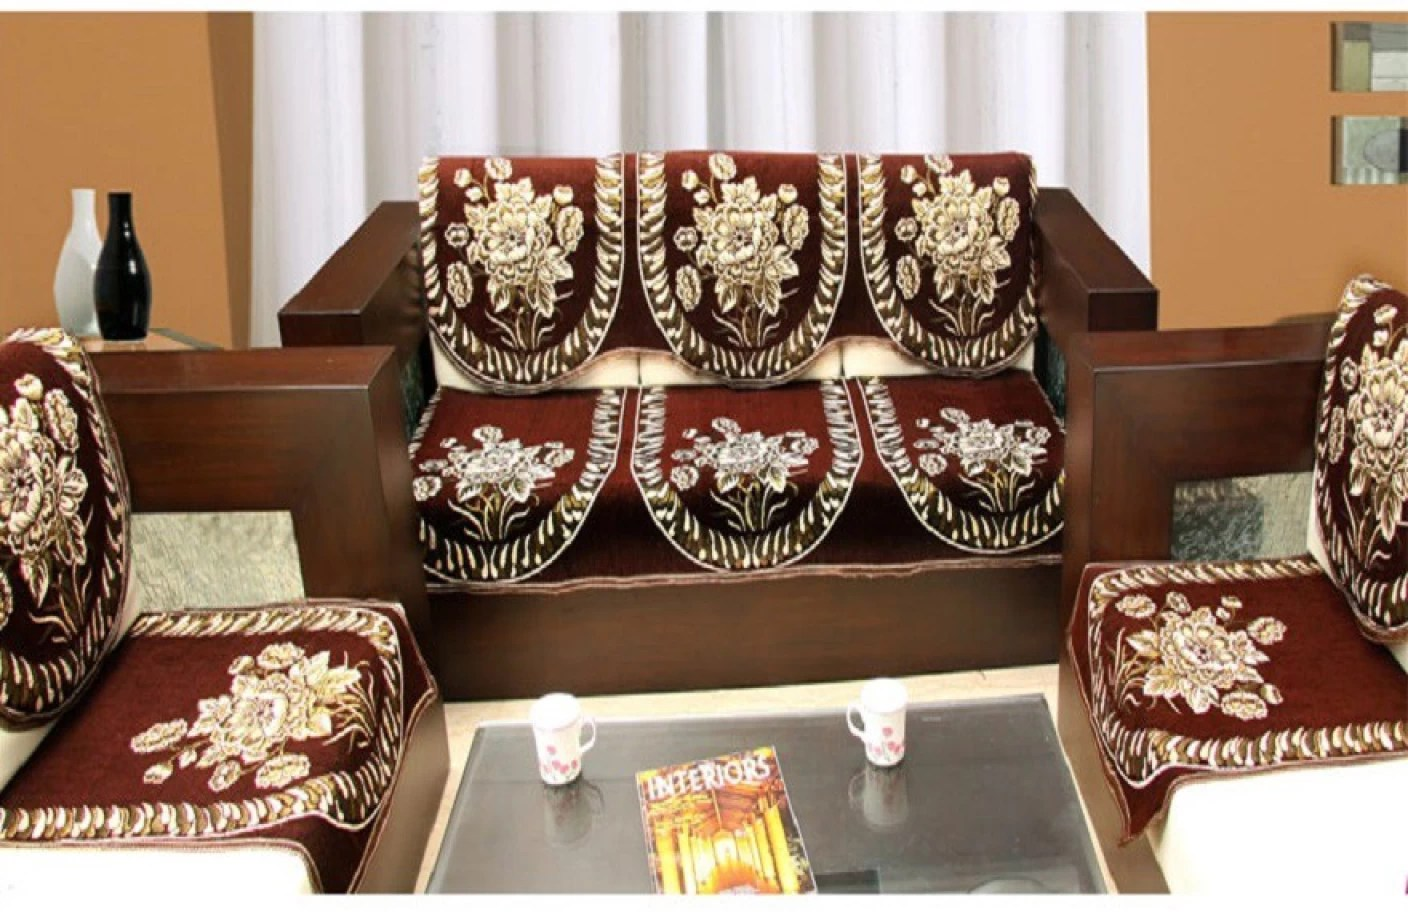 chair covers in india lounge chairs at walmart zesture jacquard sofa cover price buy